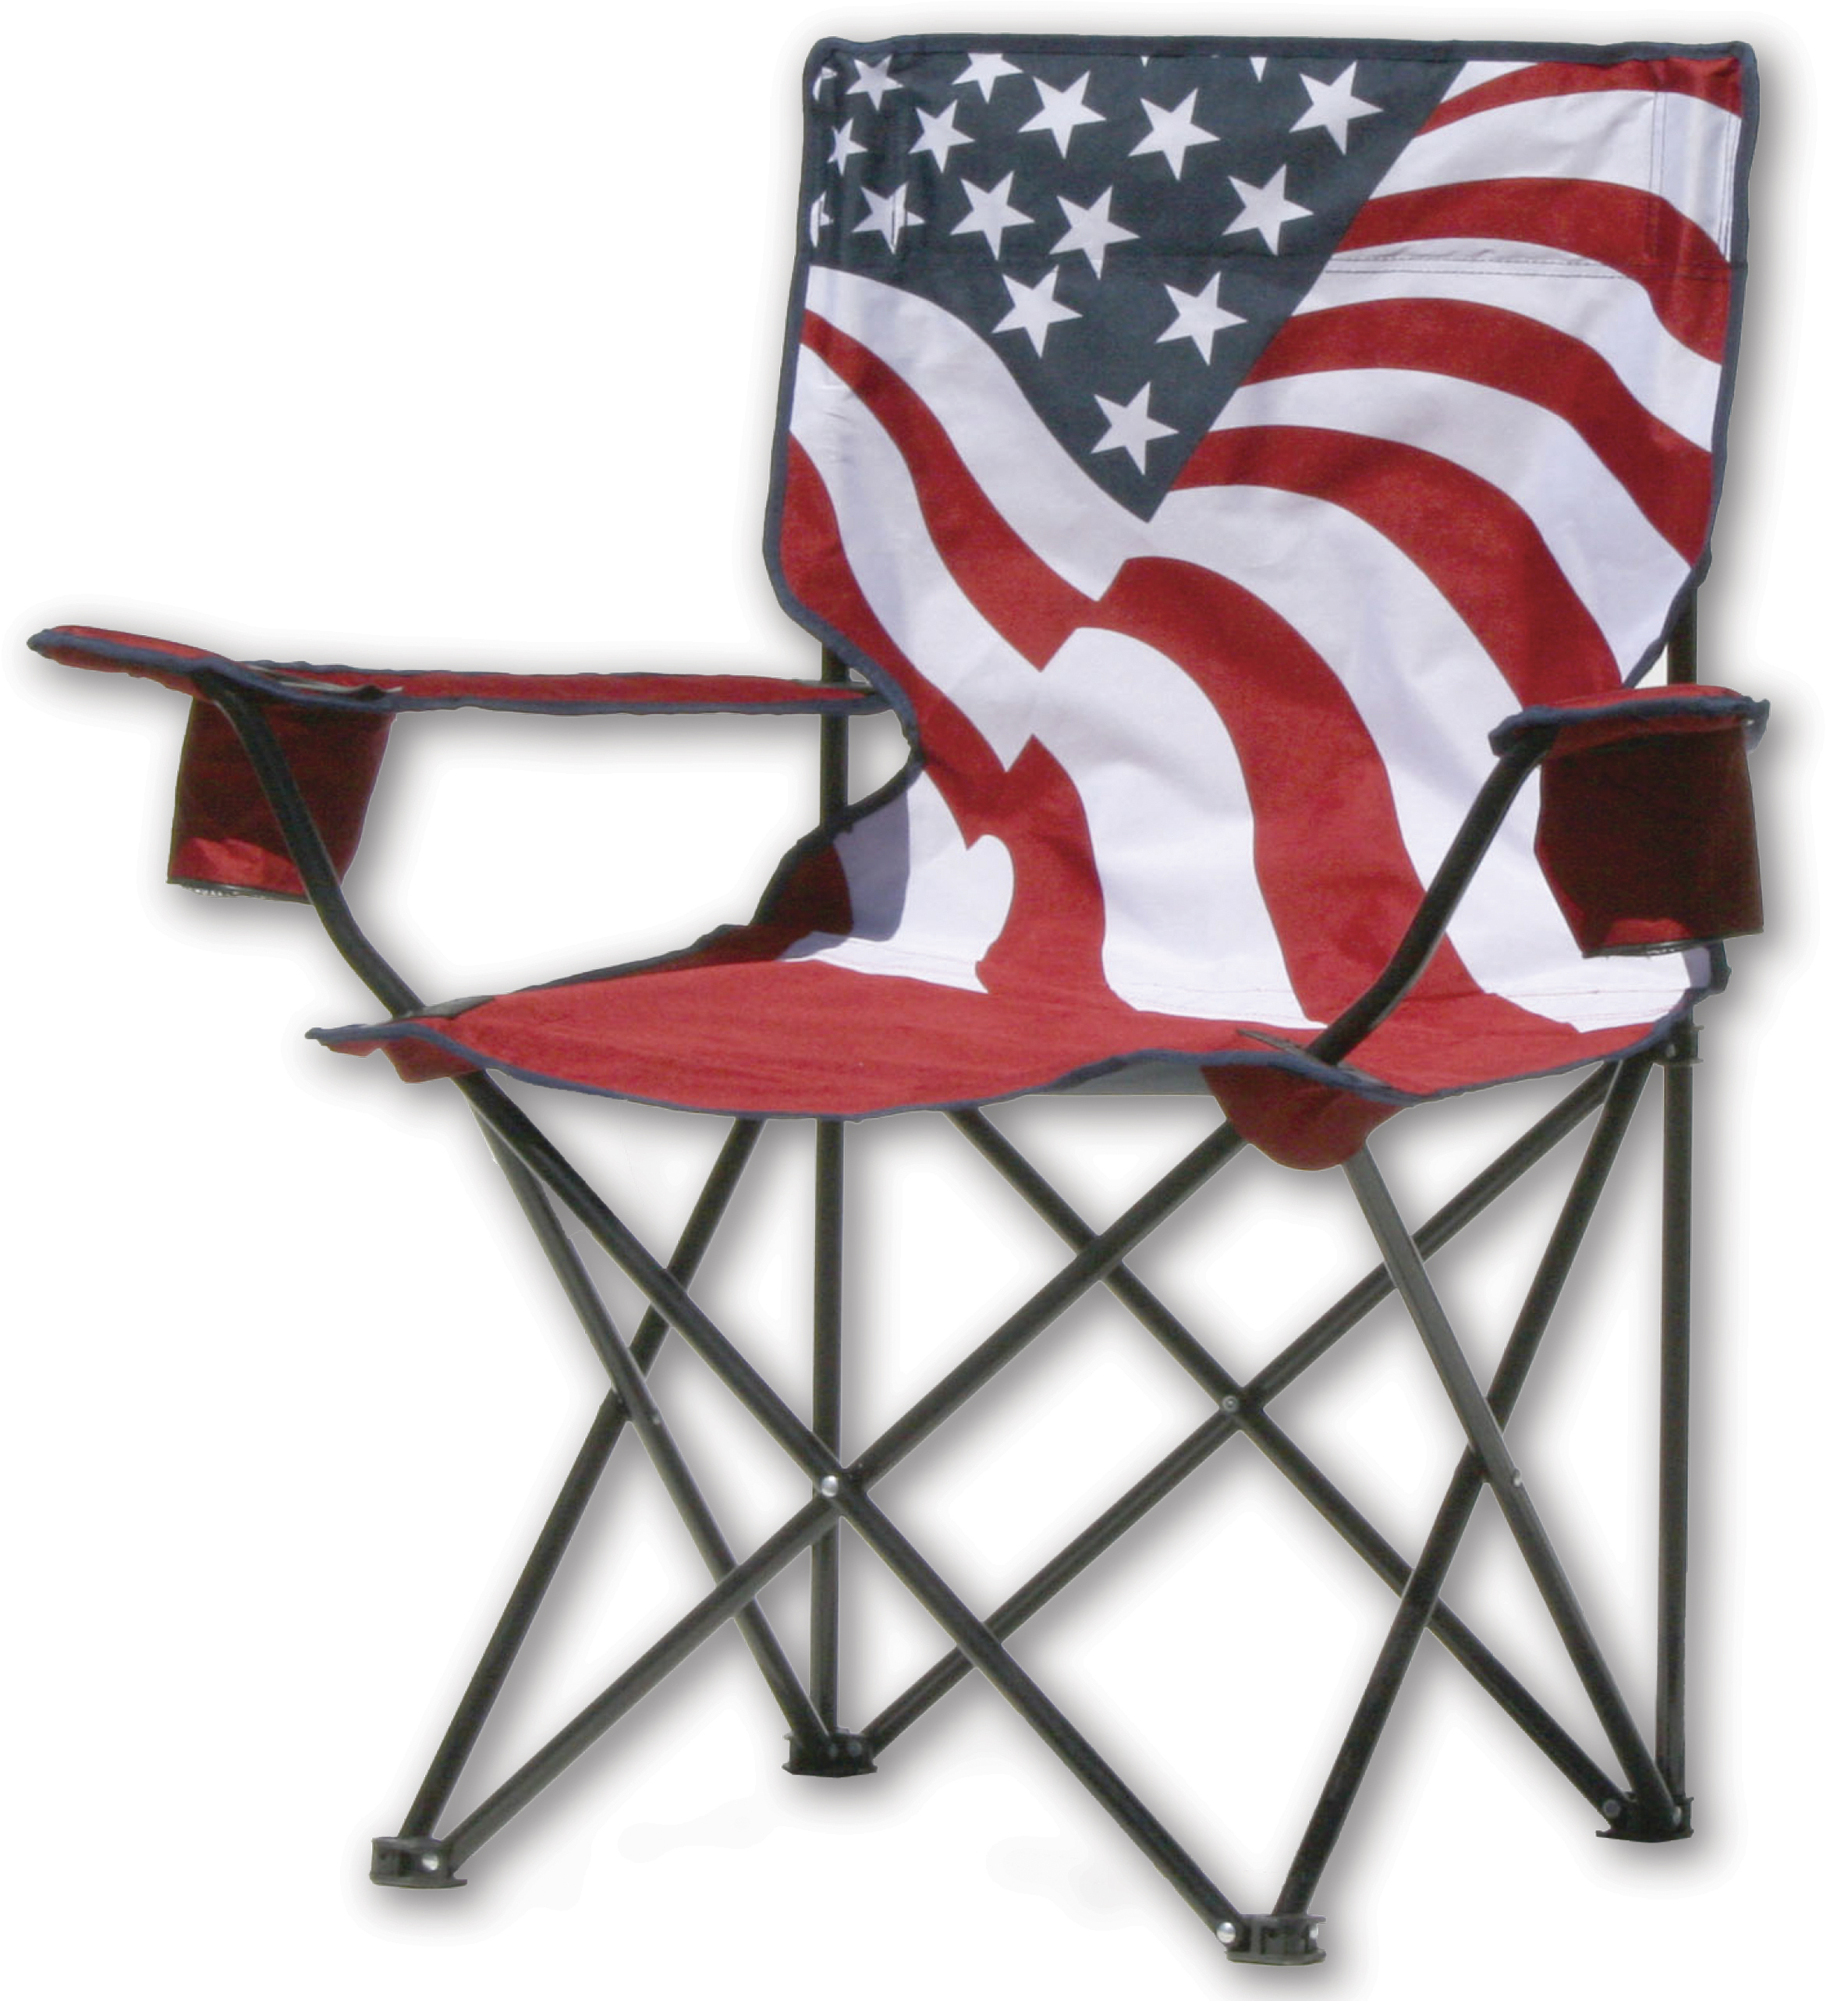 oversized folding quad chair burlap banquet covers quik american flag pattern